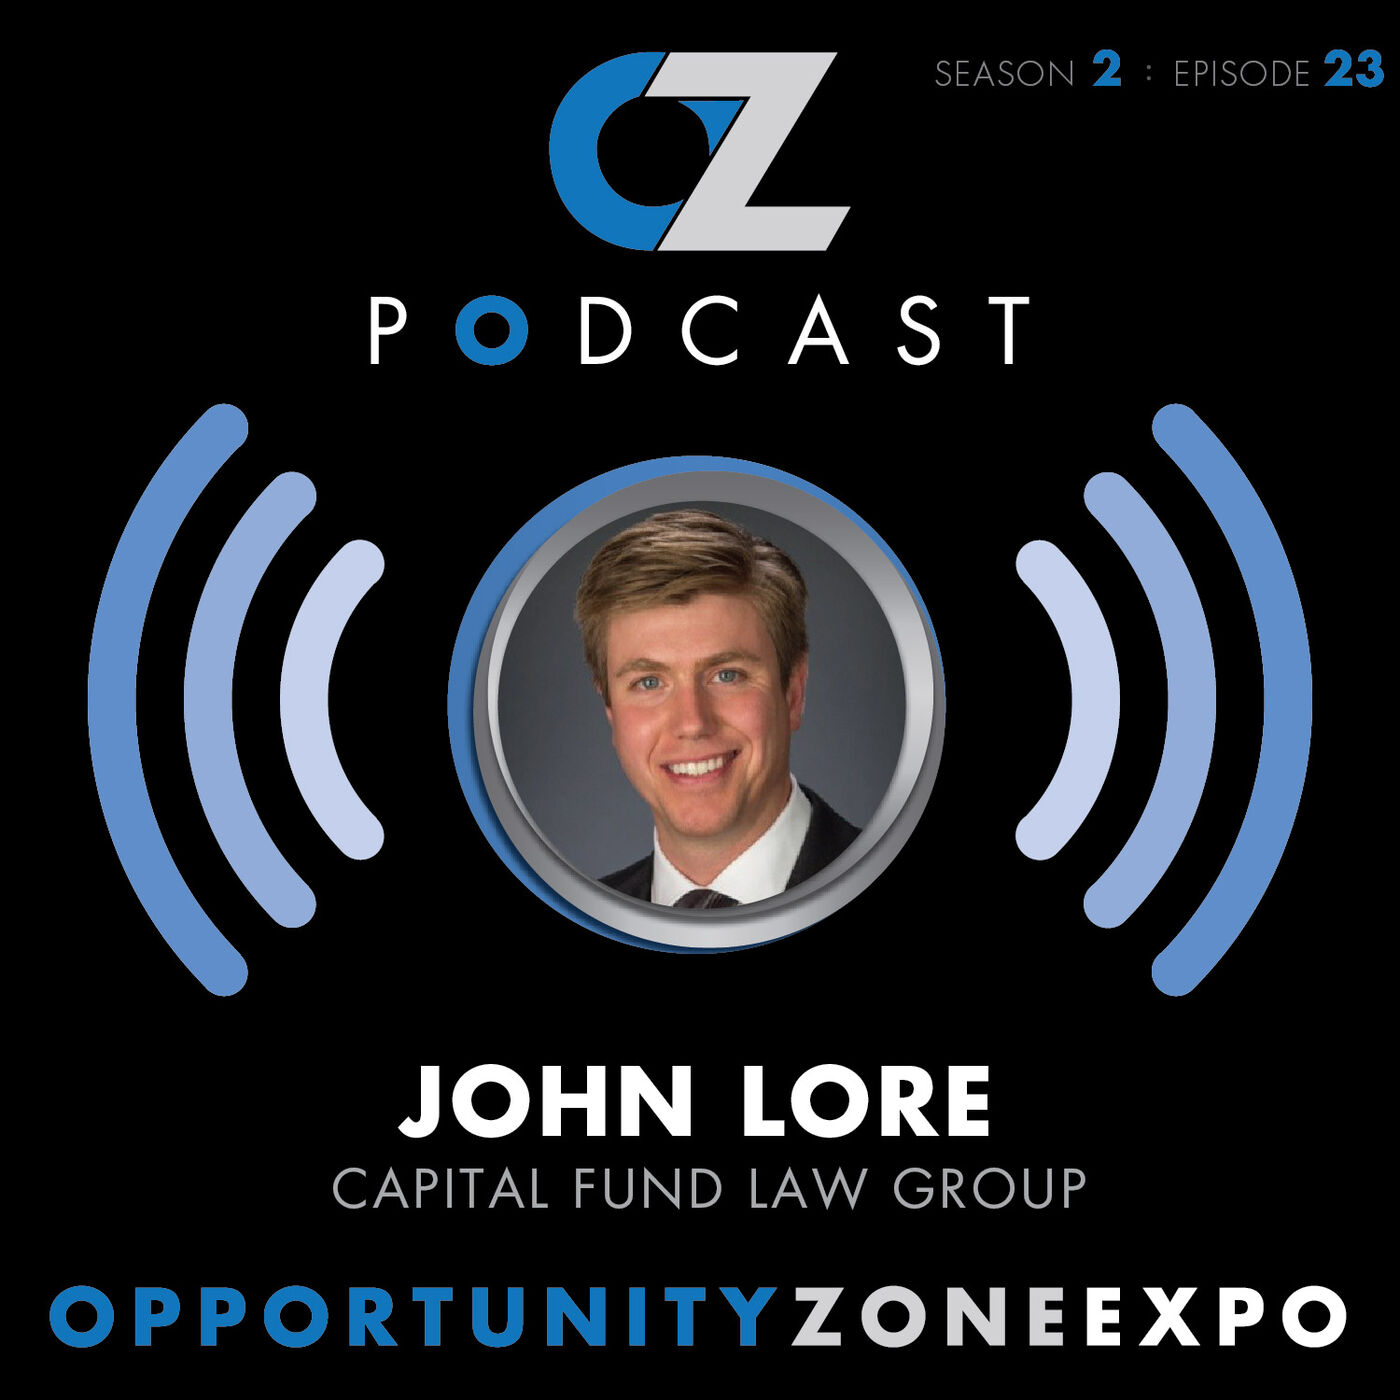 John Lore - Top-Notch Legal Advice from Crypto to Opportunity Zone by way of Utah and Moscow